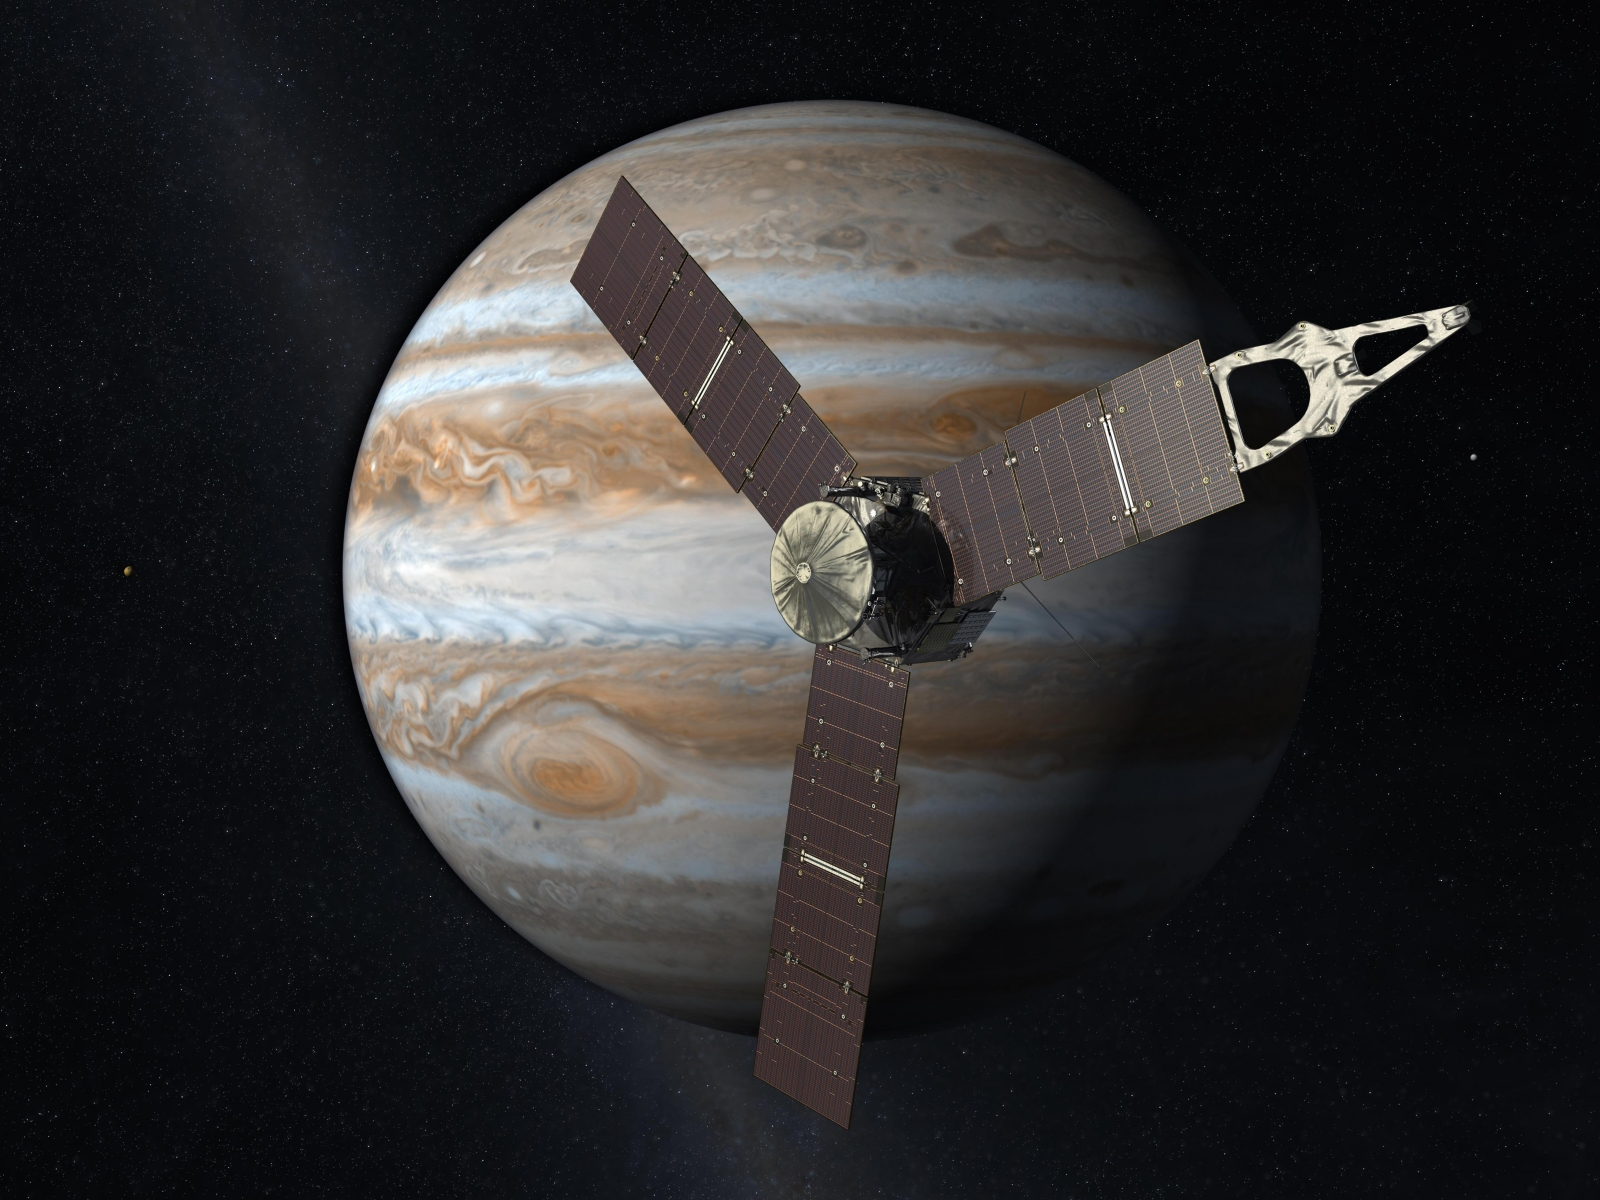 Juno spacecraft with Jupiter